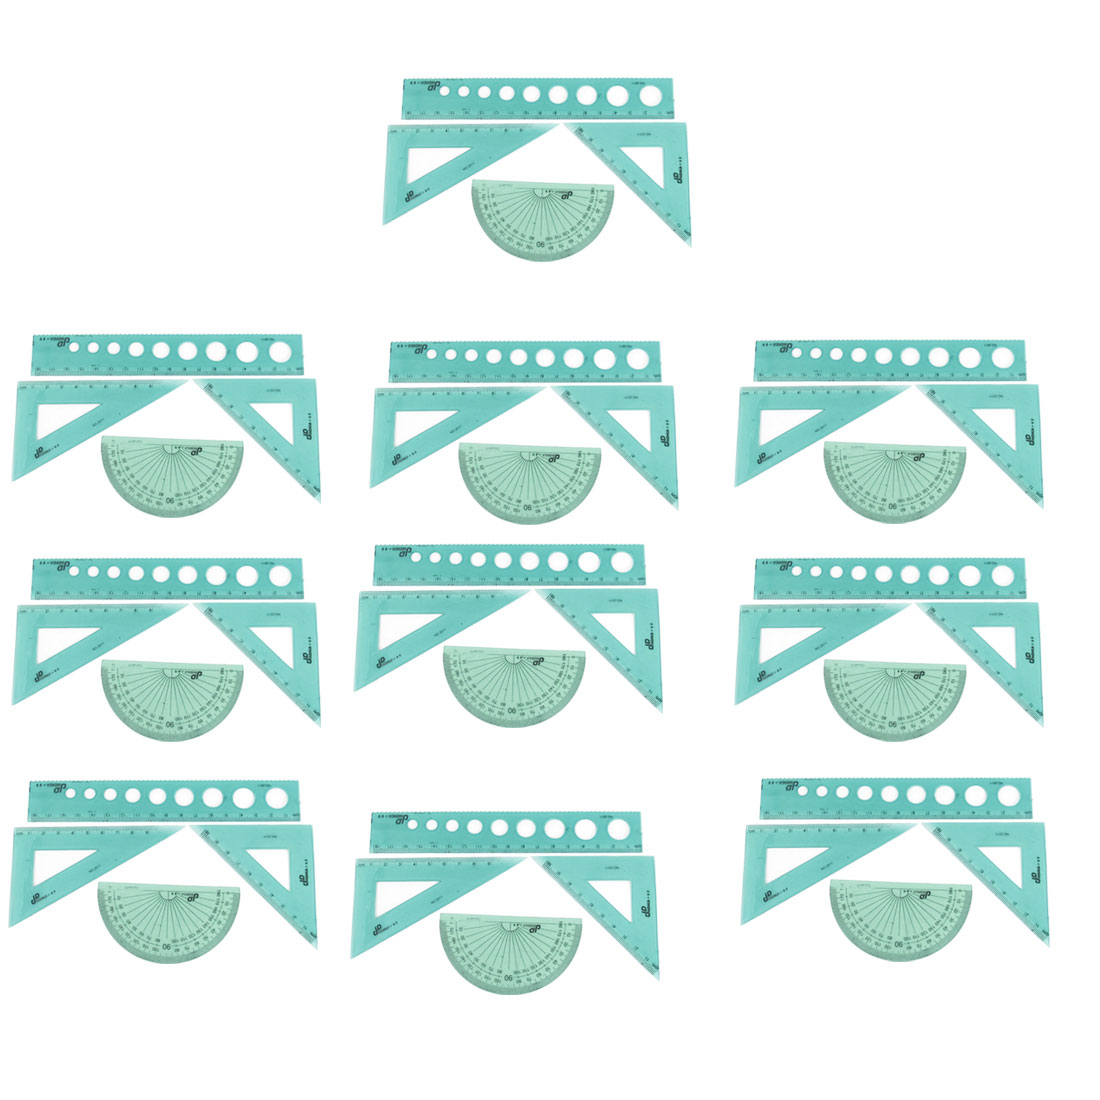 10 Sets Square 18cm Straight Ruler Protractor Combination 4 in 1 Measuring Tool